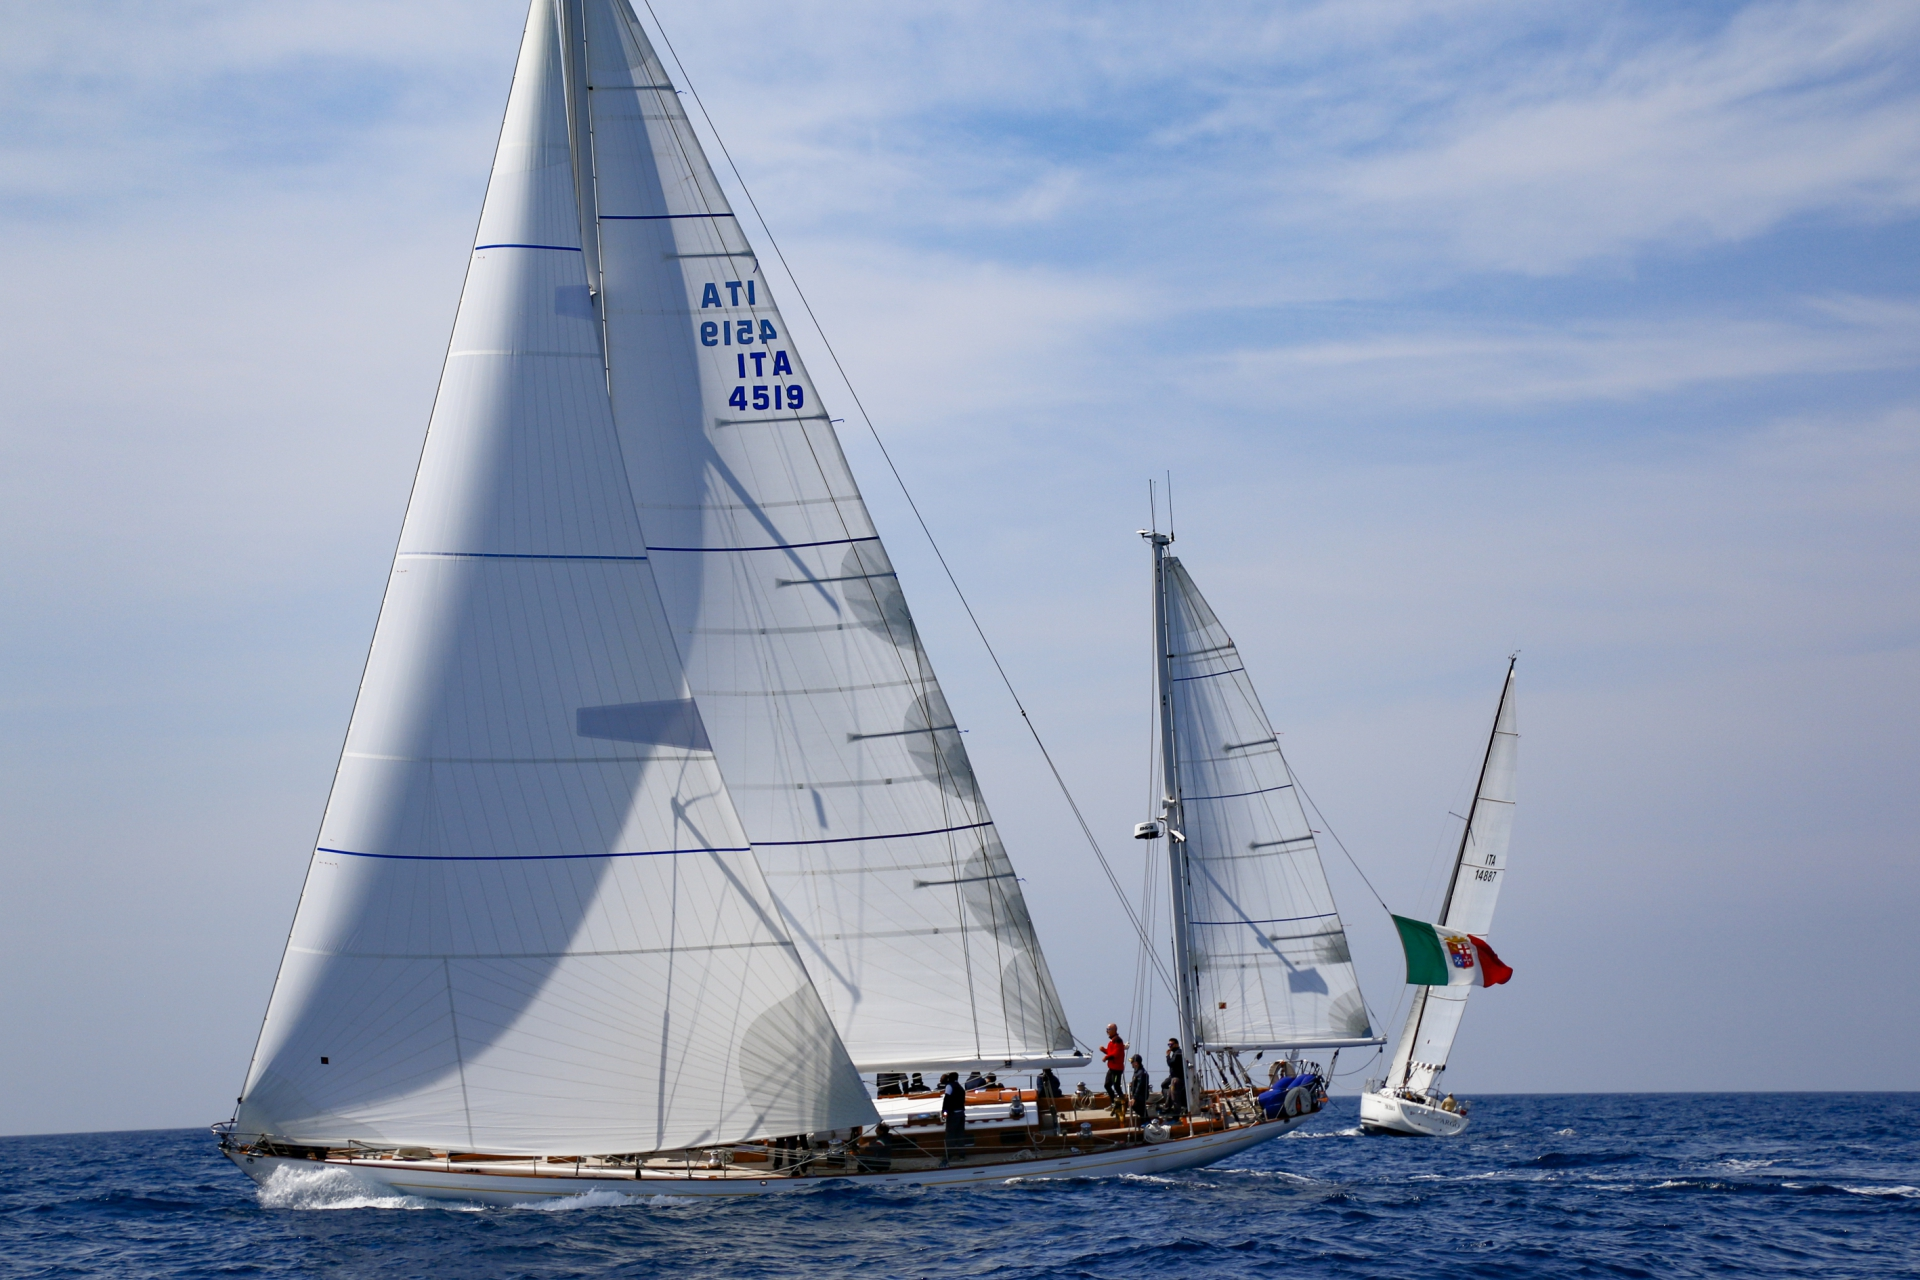 RAN 630: PARTITO IL COUNDOWN DELLA REGATA - NEWS - Yacht Club Costa Smeralda